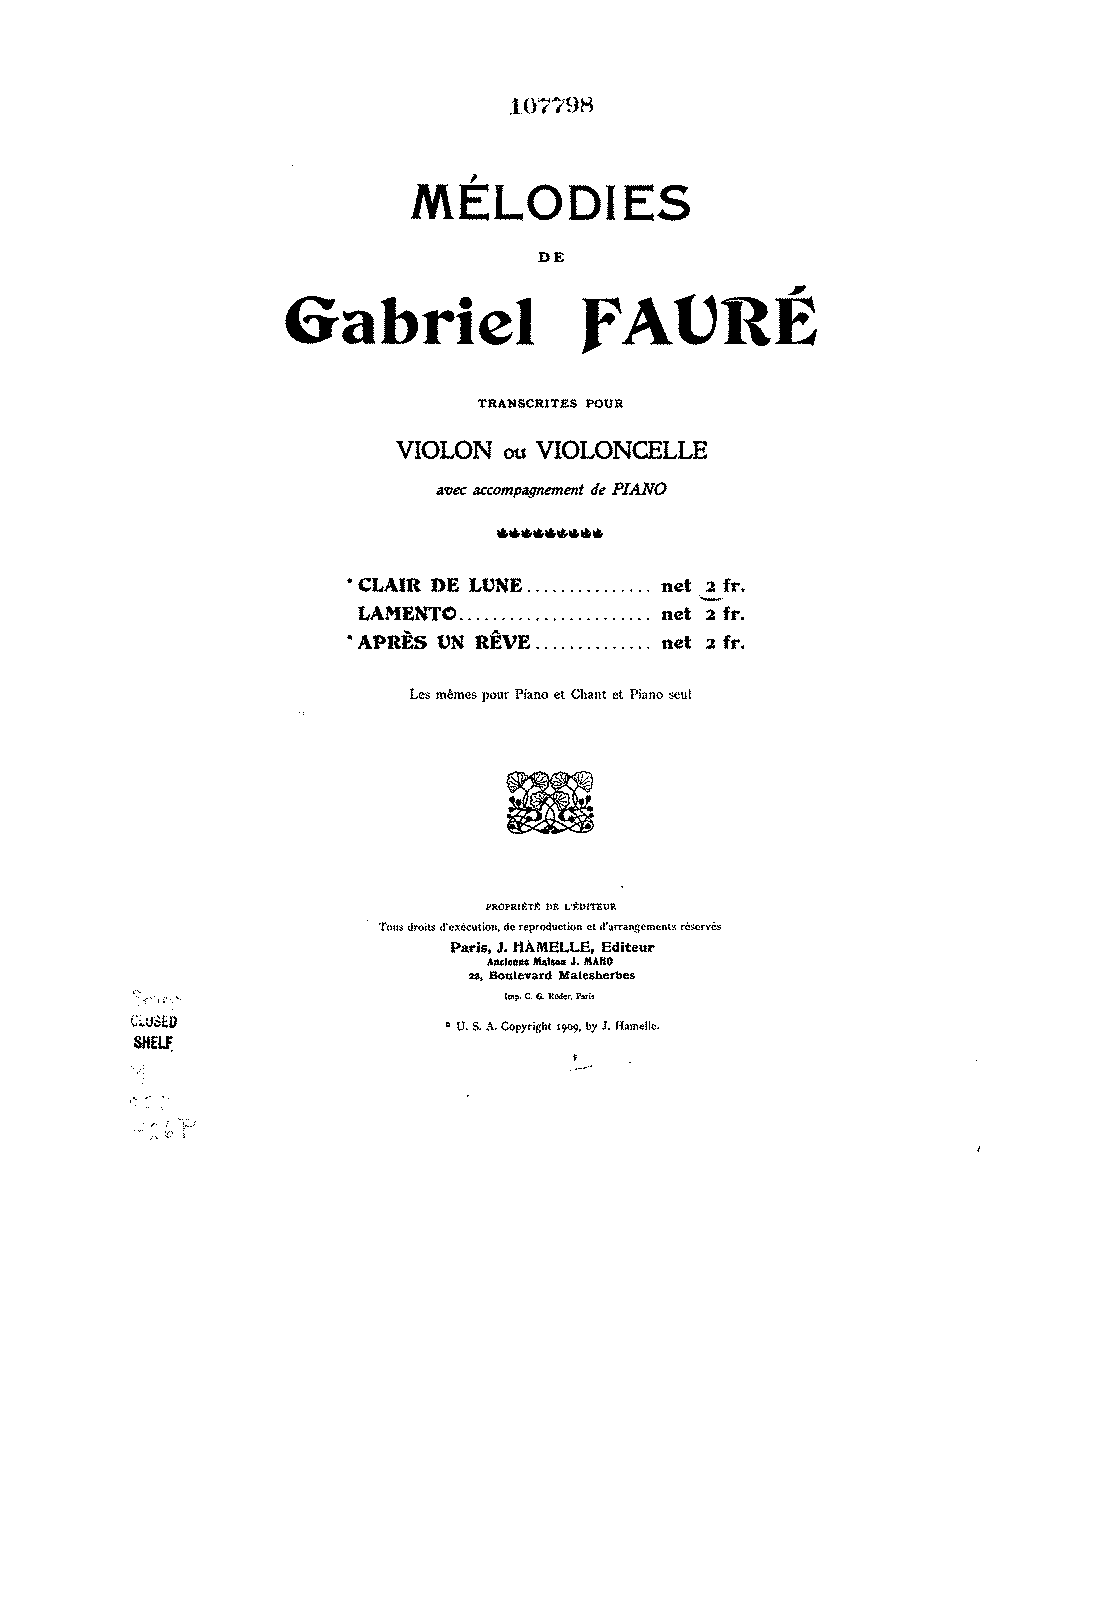 PMLP54710-Faure - Clair de lune for Violin Cello and Piano Op46 (Perilhou) score.pdf